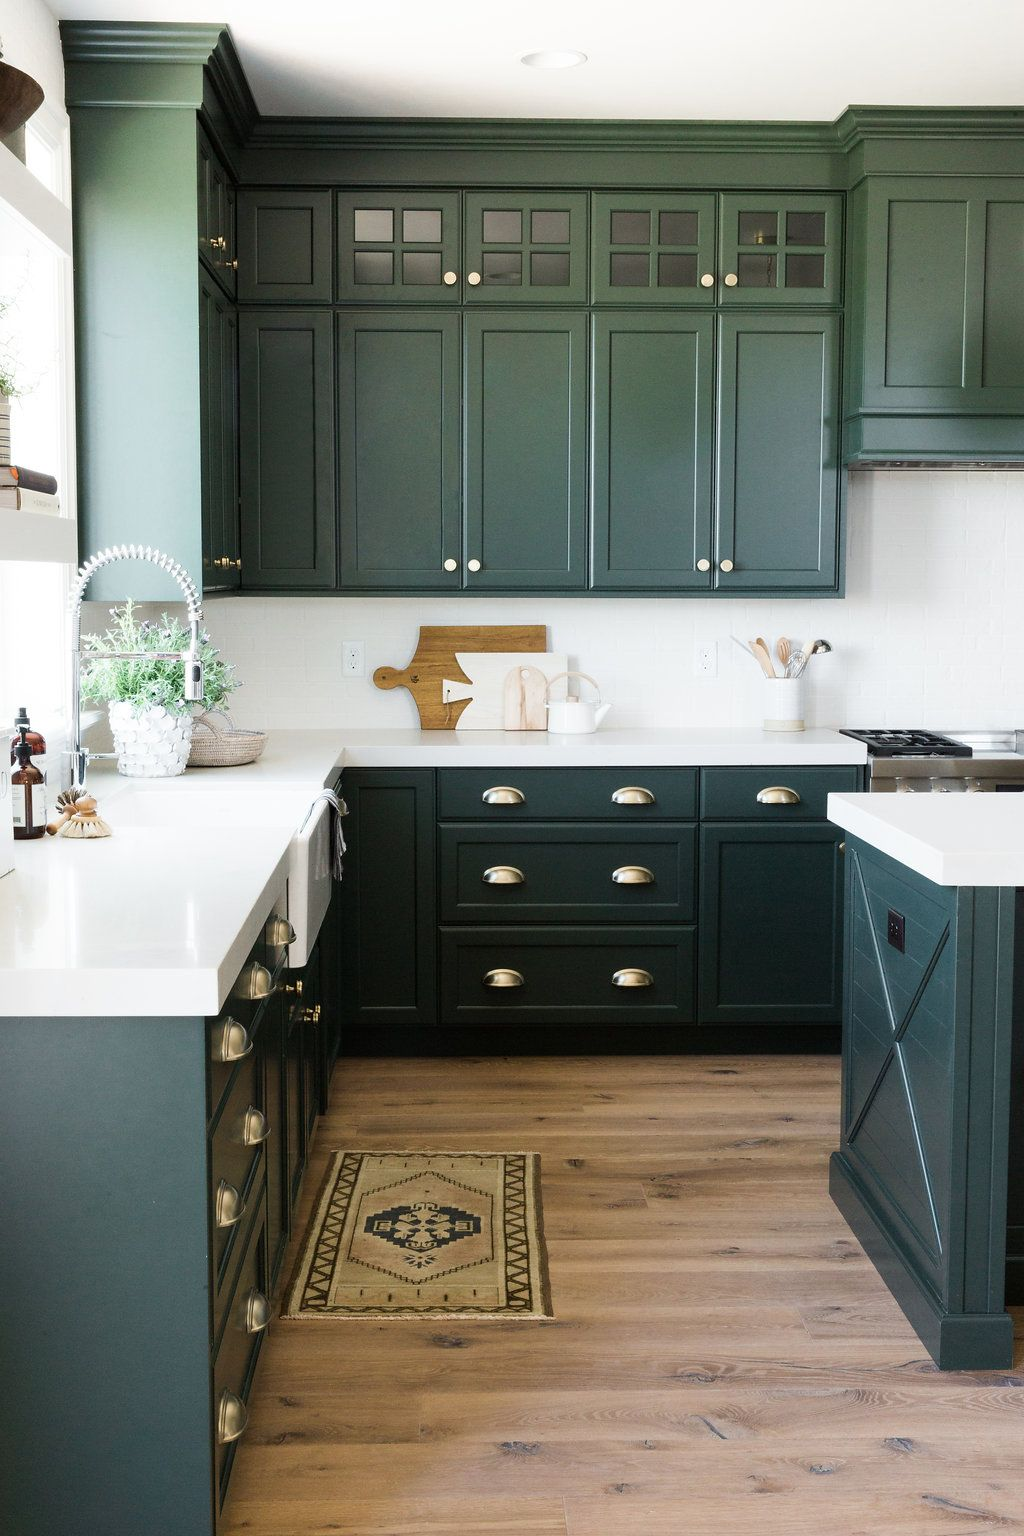 17 Green Kitchens that inspire in 2020 (With